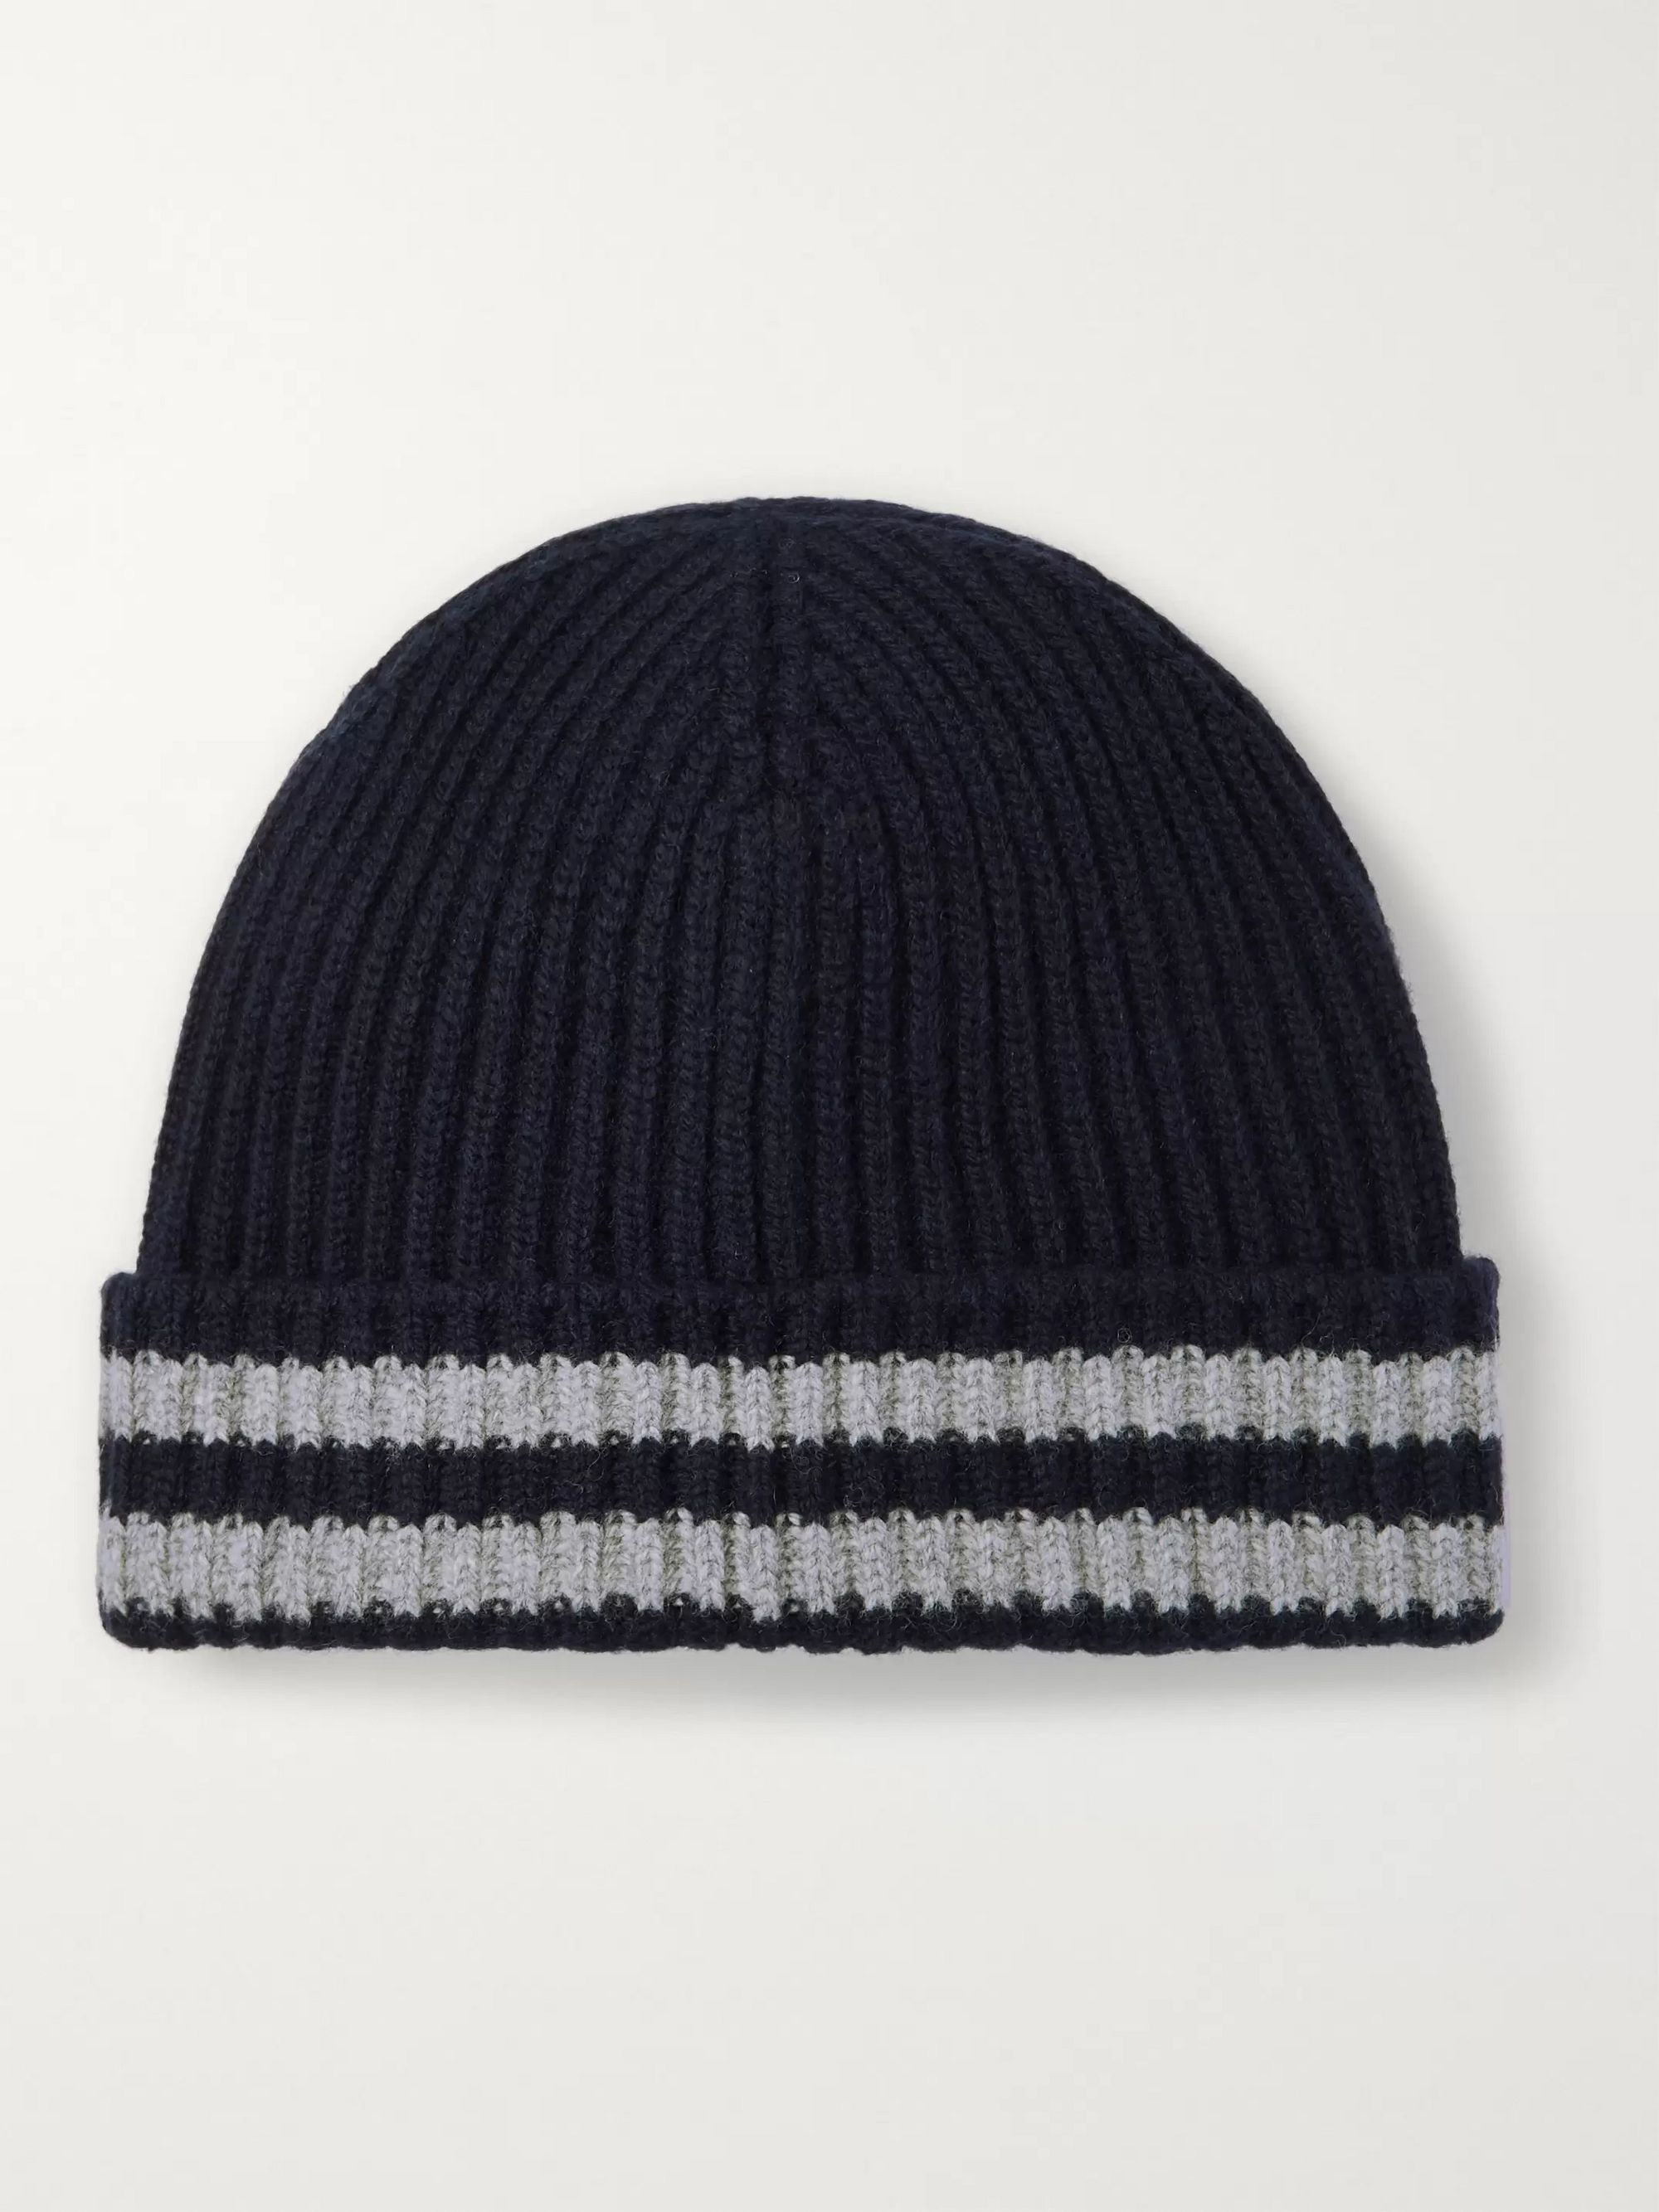 Mr P. Striped Ribbed Wool Beanie